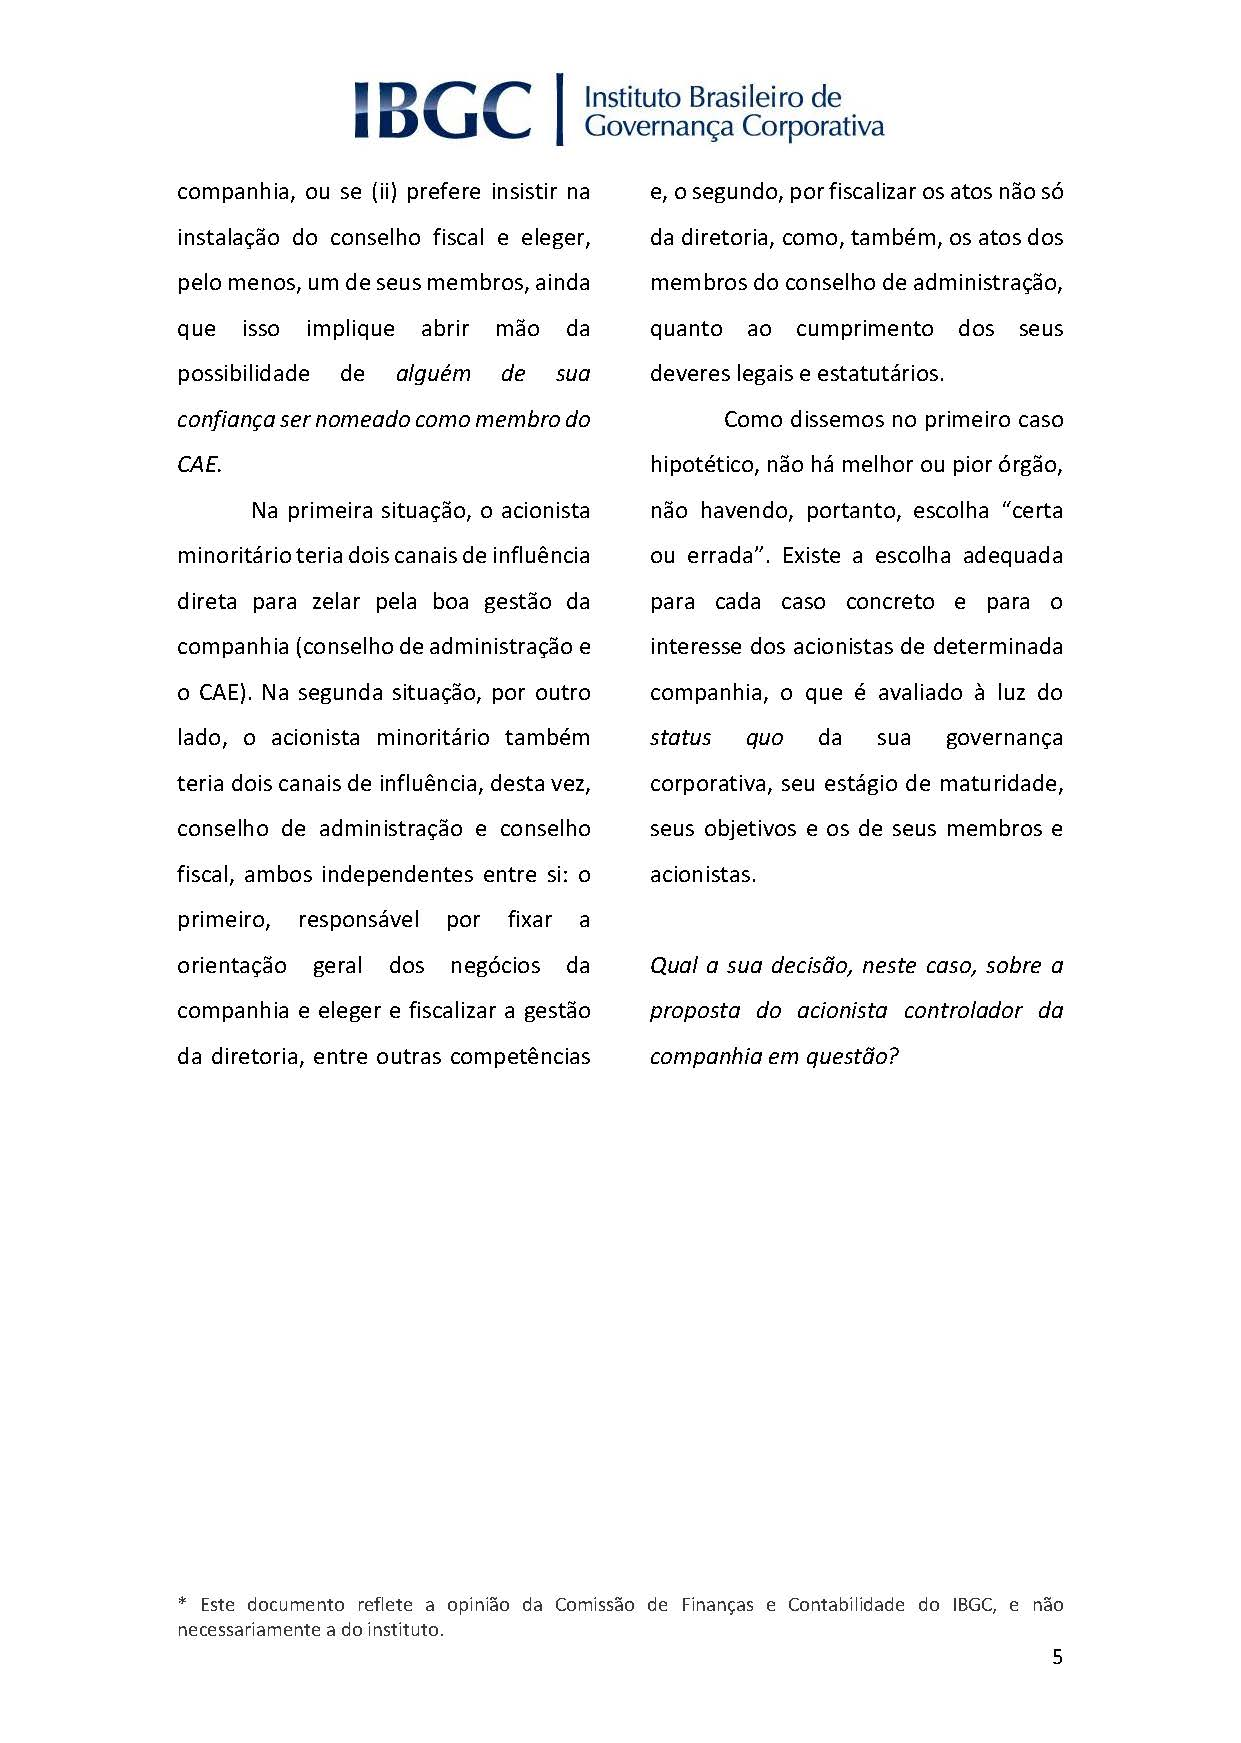 Publicacao-IBGCDiscute-CAExCF_Page_5